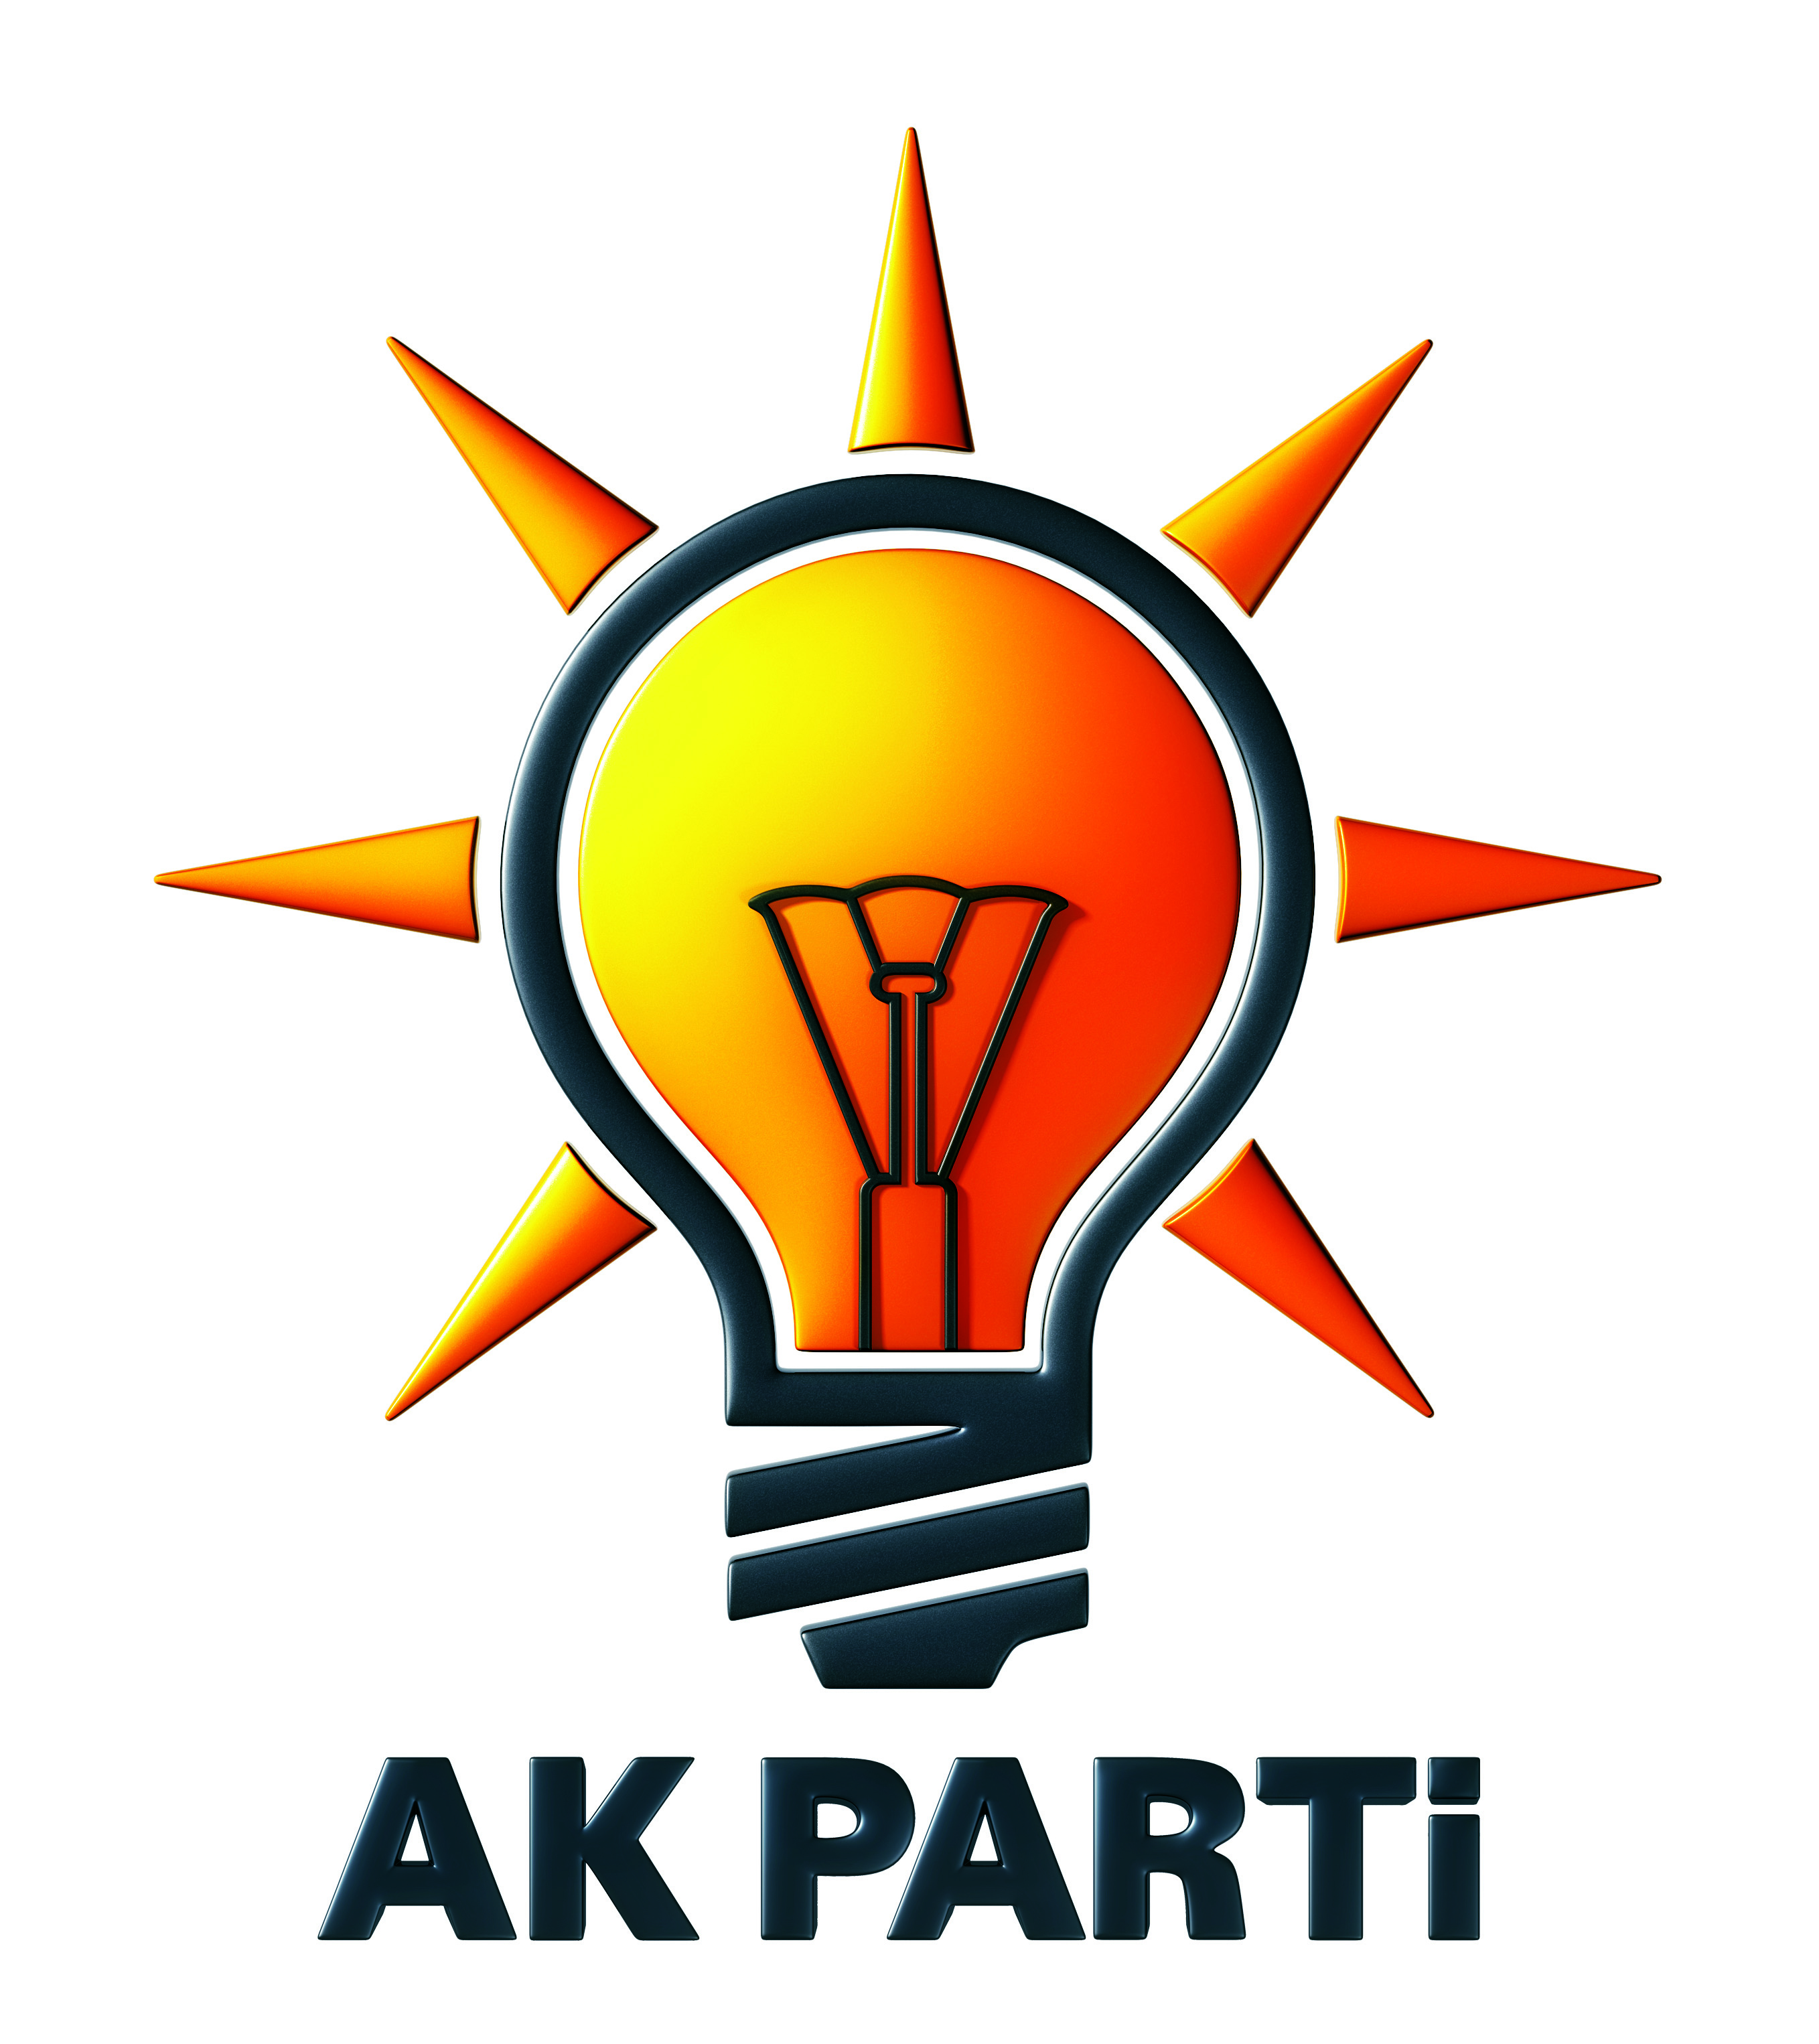 Ak Parti Logo Wallpaper